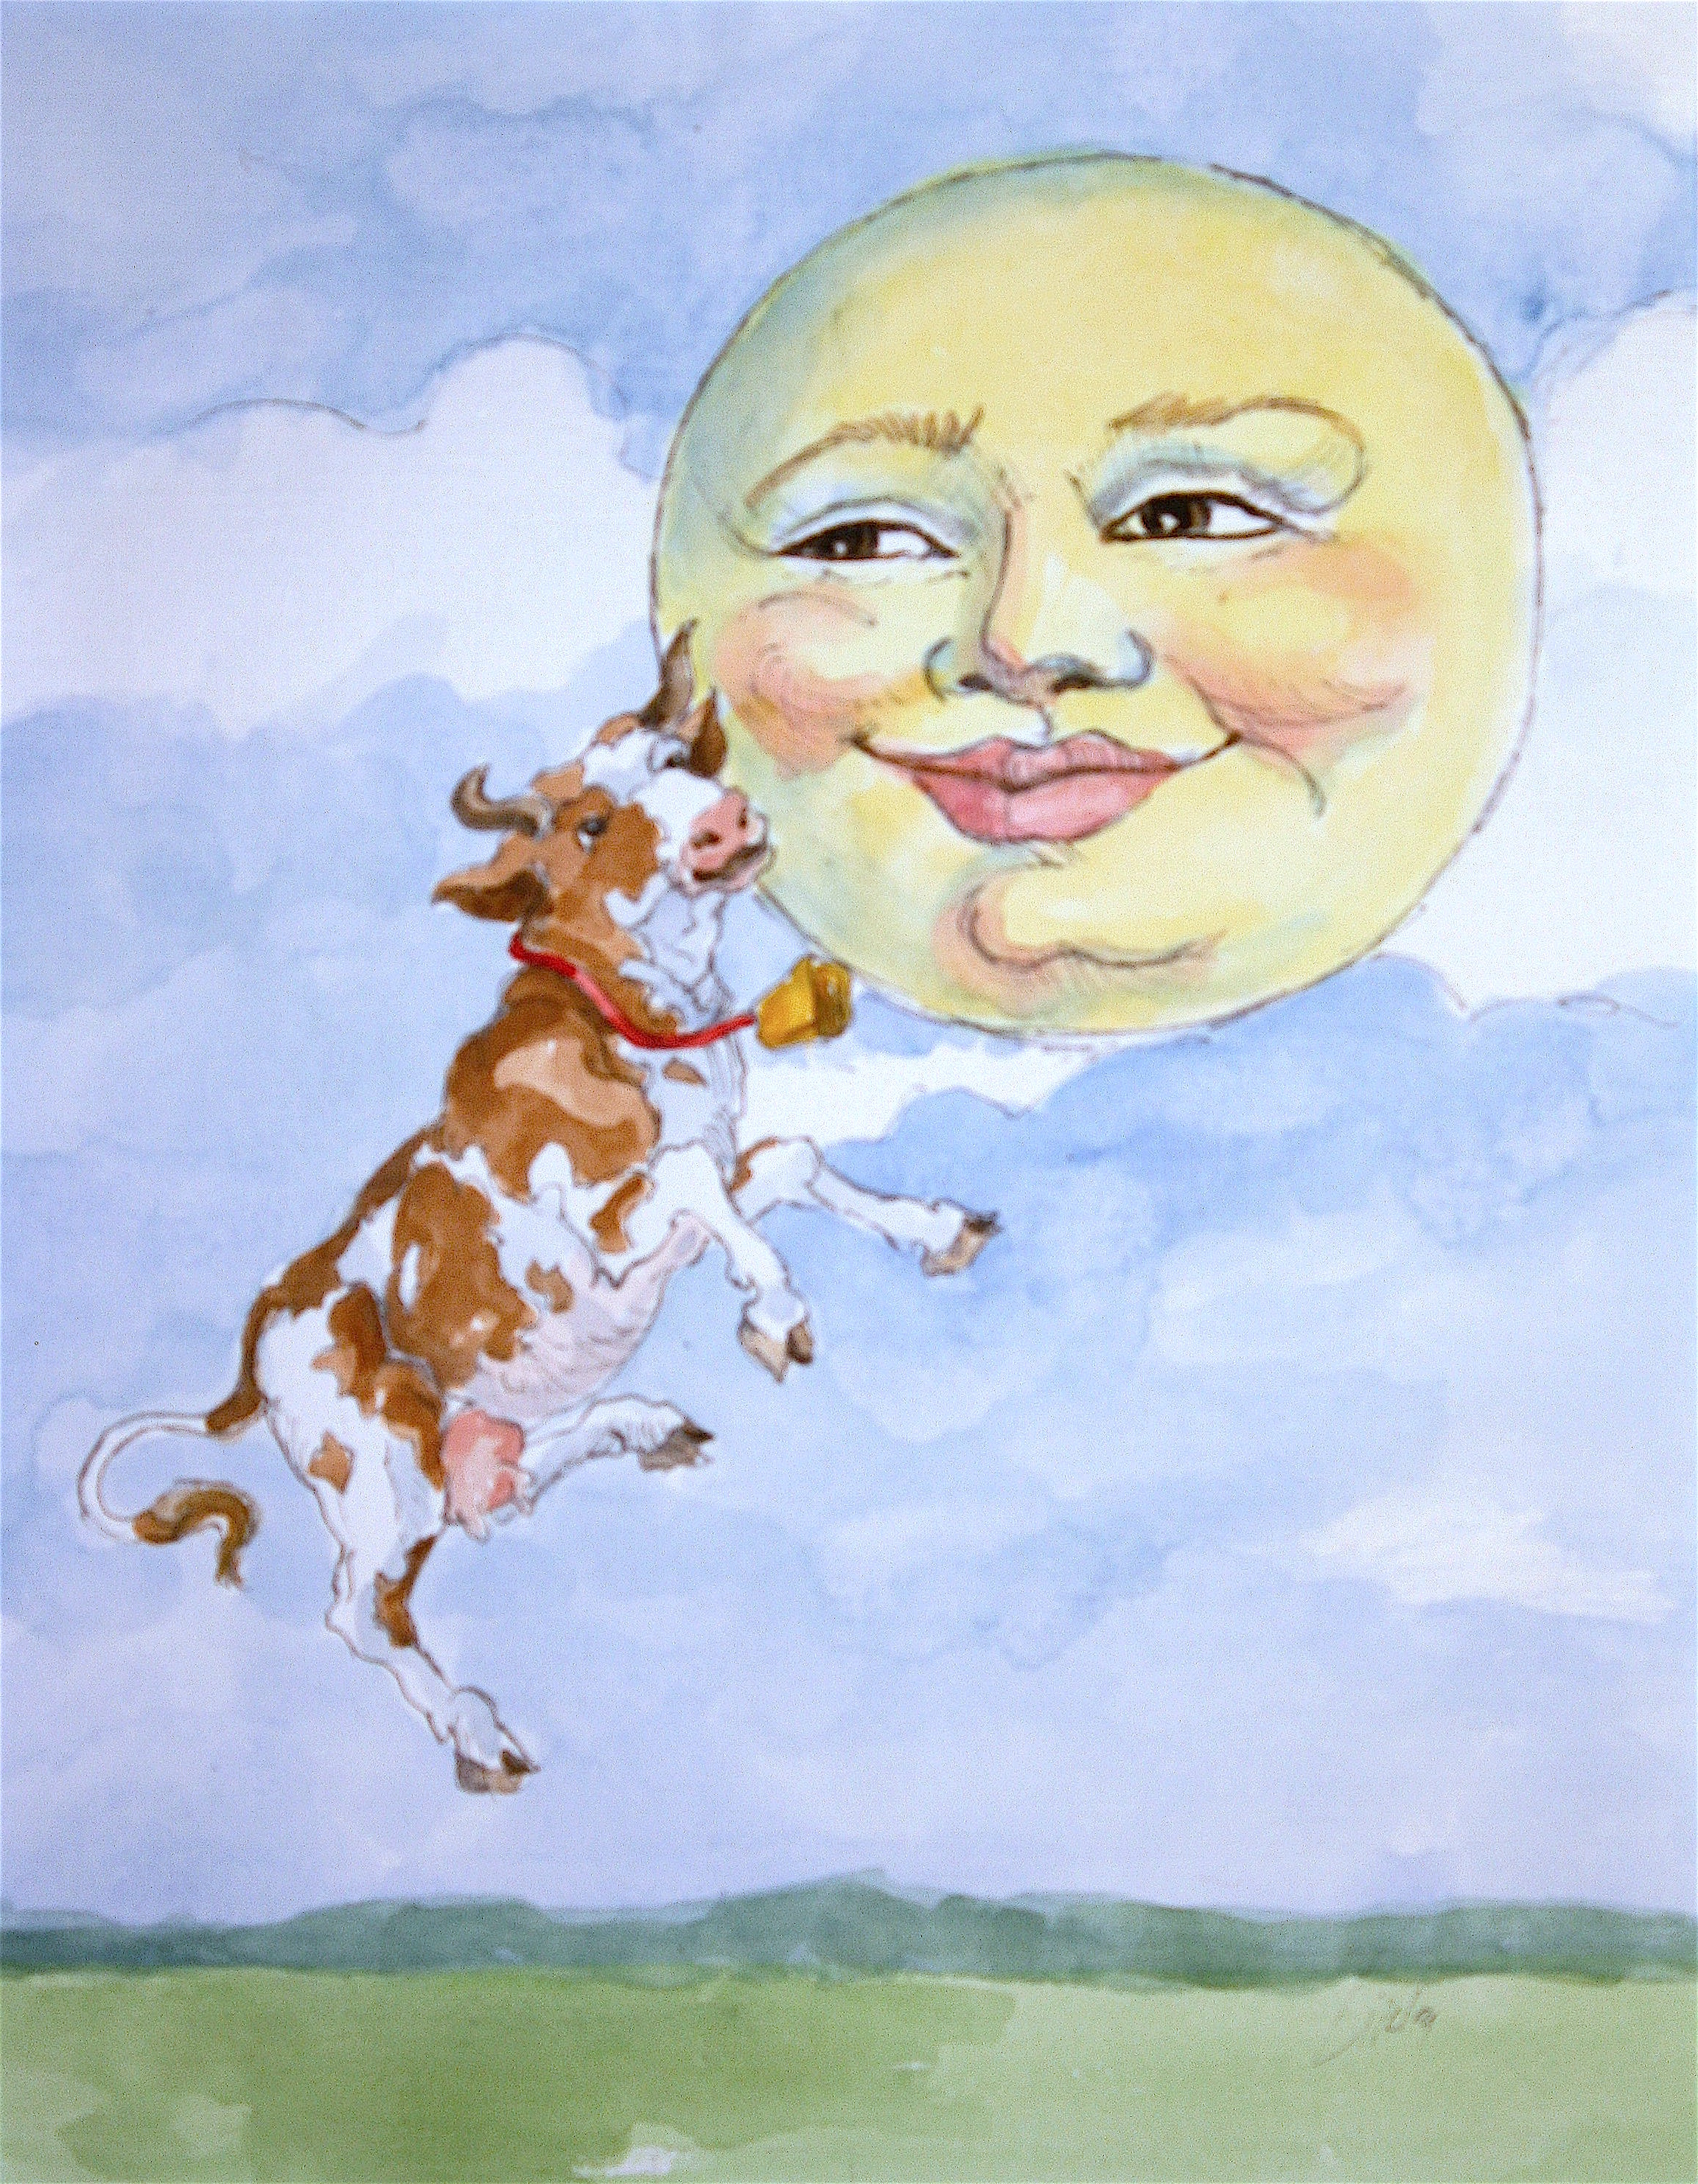 Cow Jumped Over the Moon.JPG